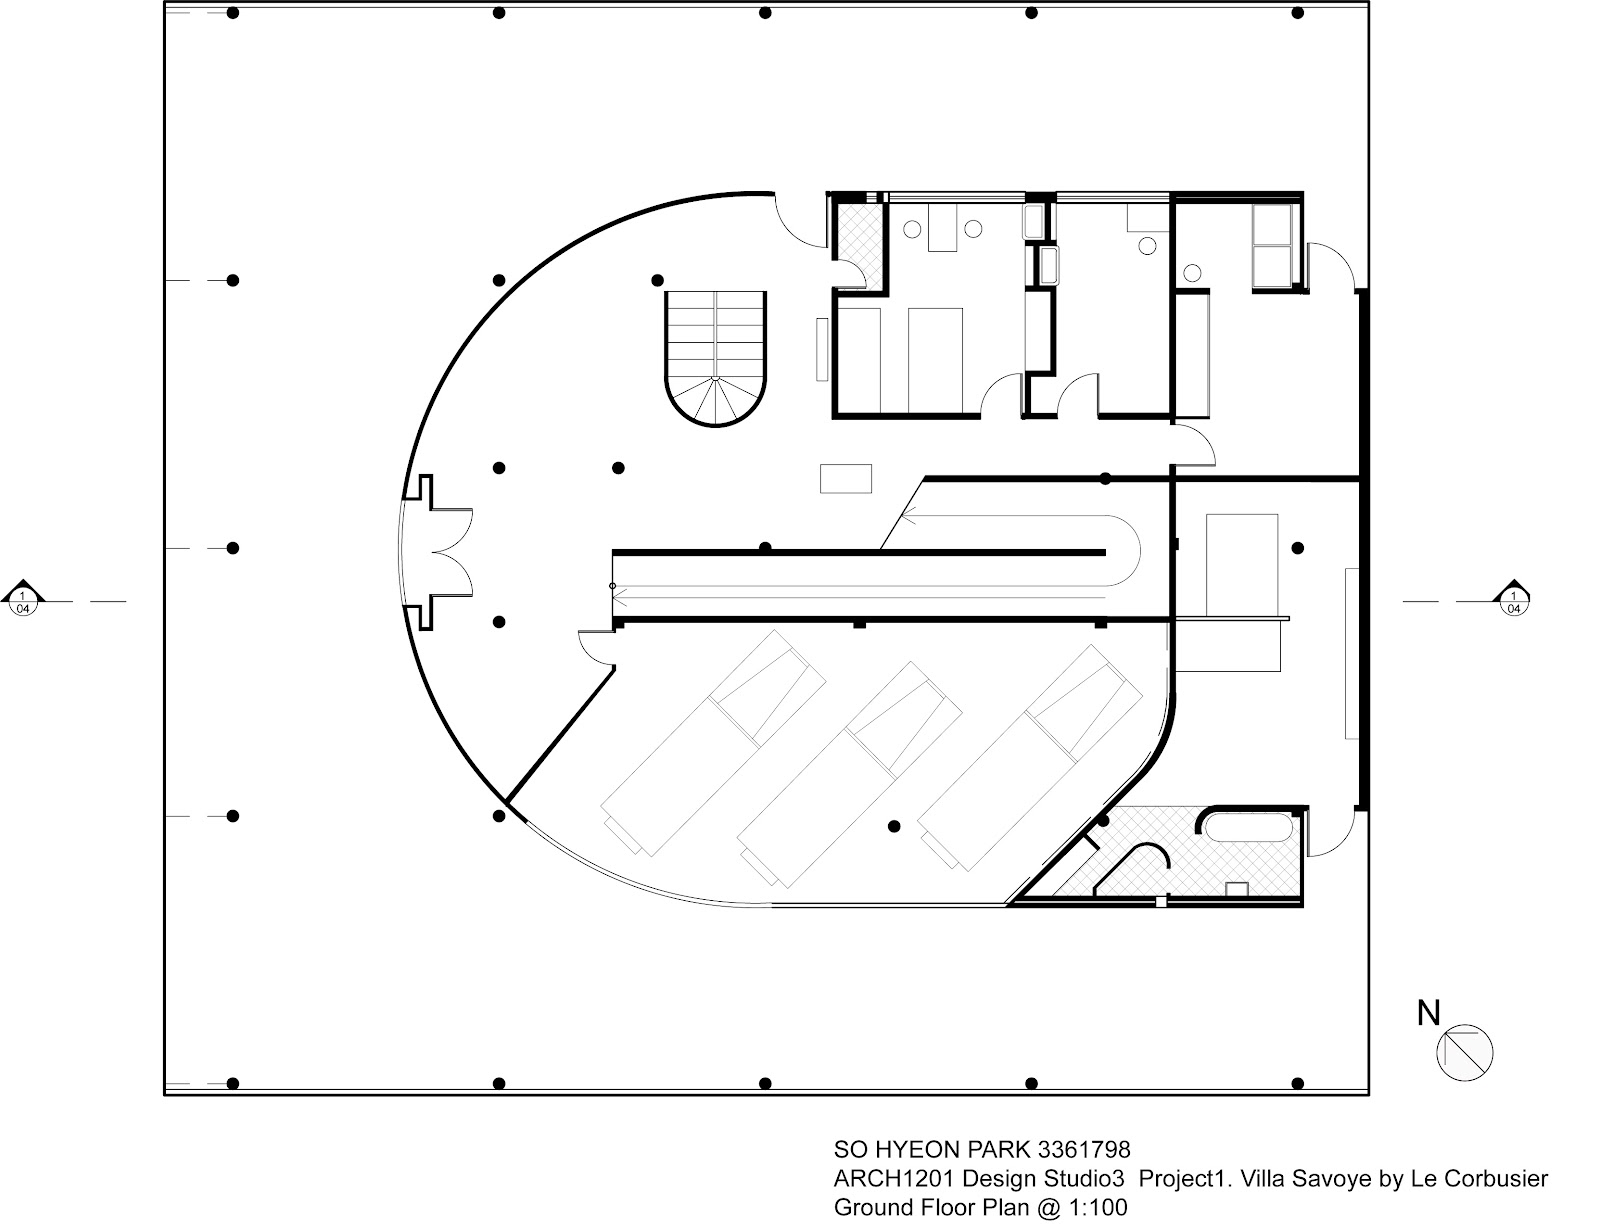 Posted by Sohyeon Park  Chloe  at 6 10 AMVilla Savoye 2nd Floor Plan